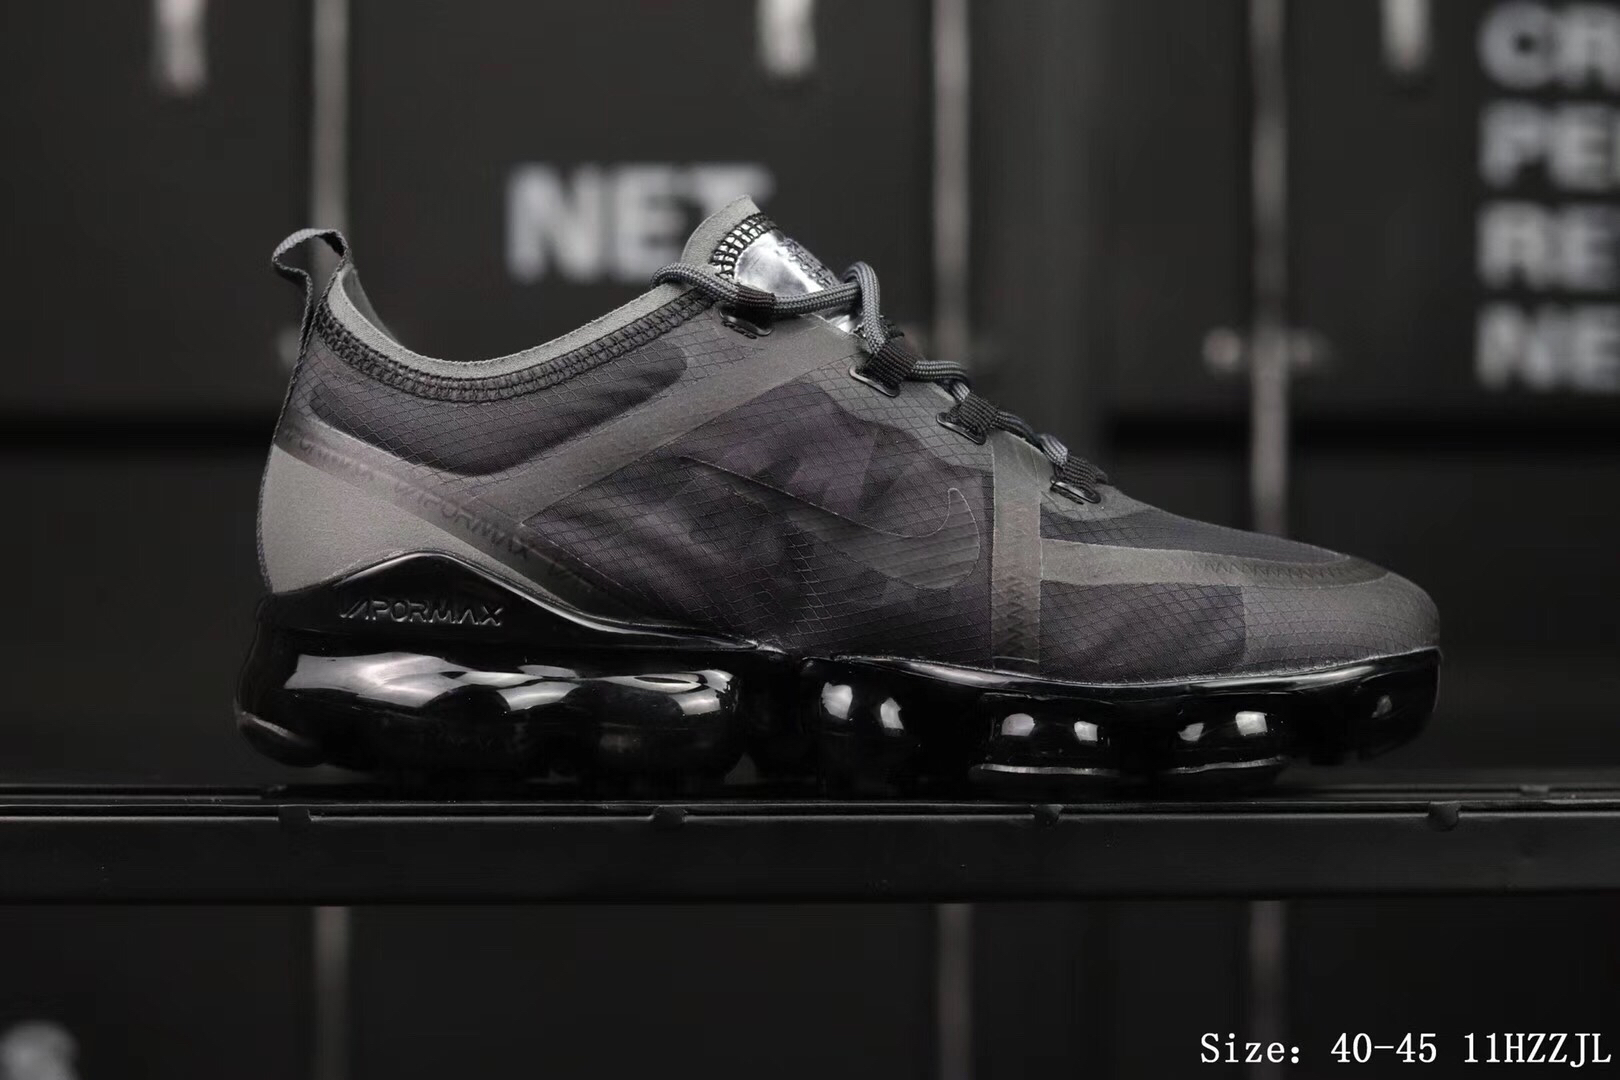 Nike Air Vapormax 2019 Mesh All Black Shoes For Women